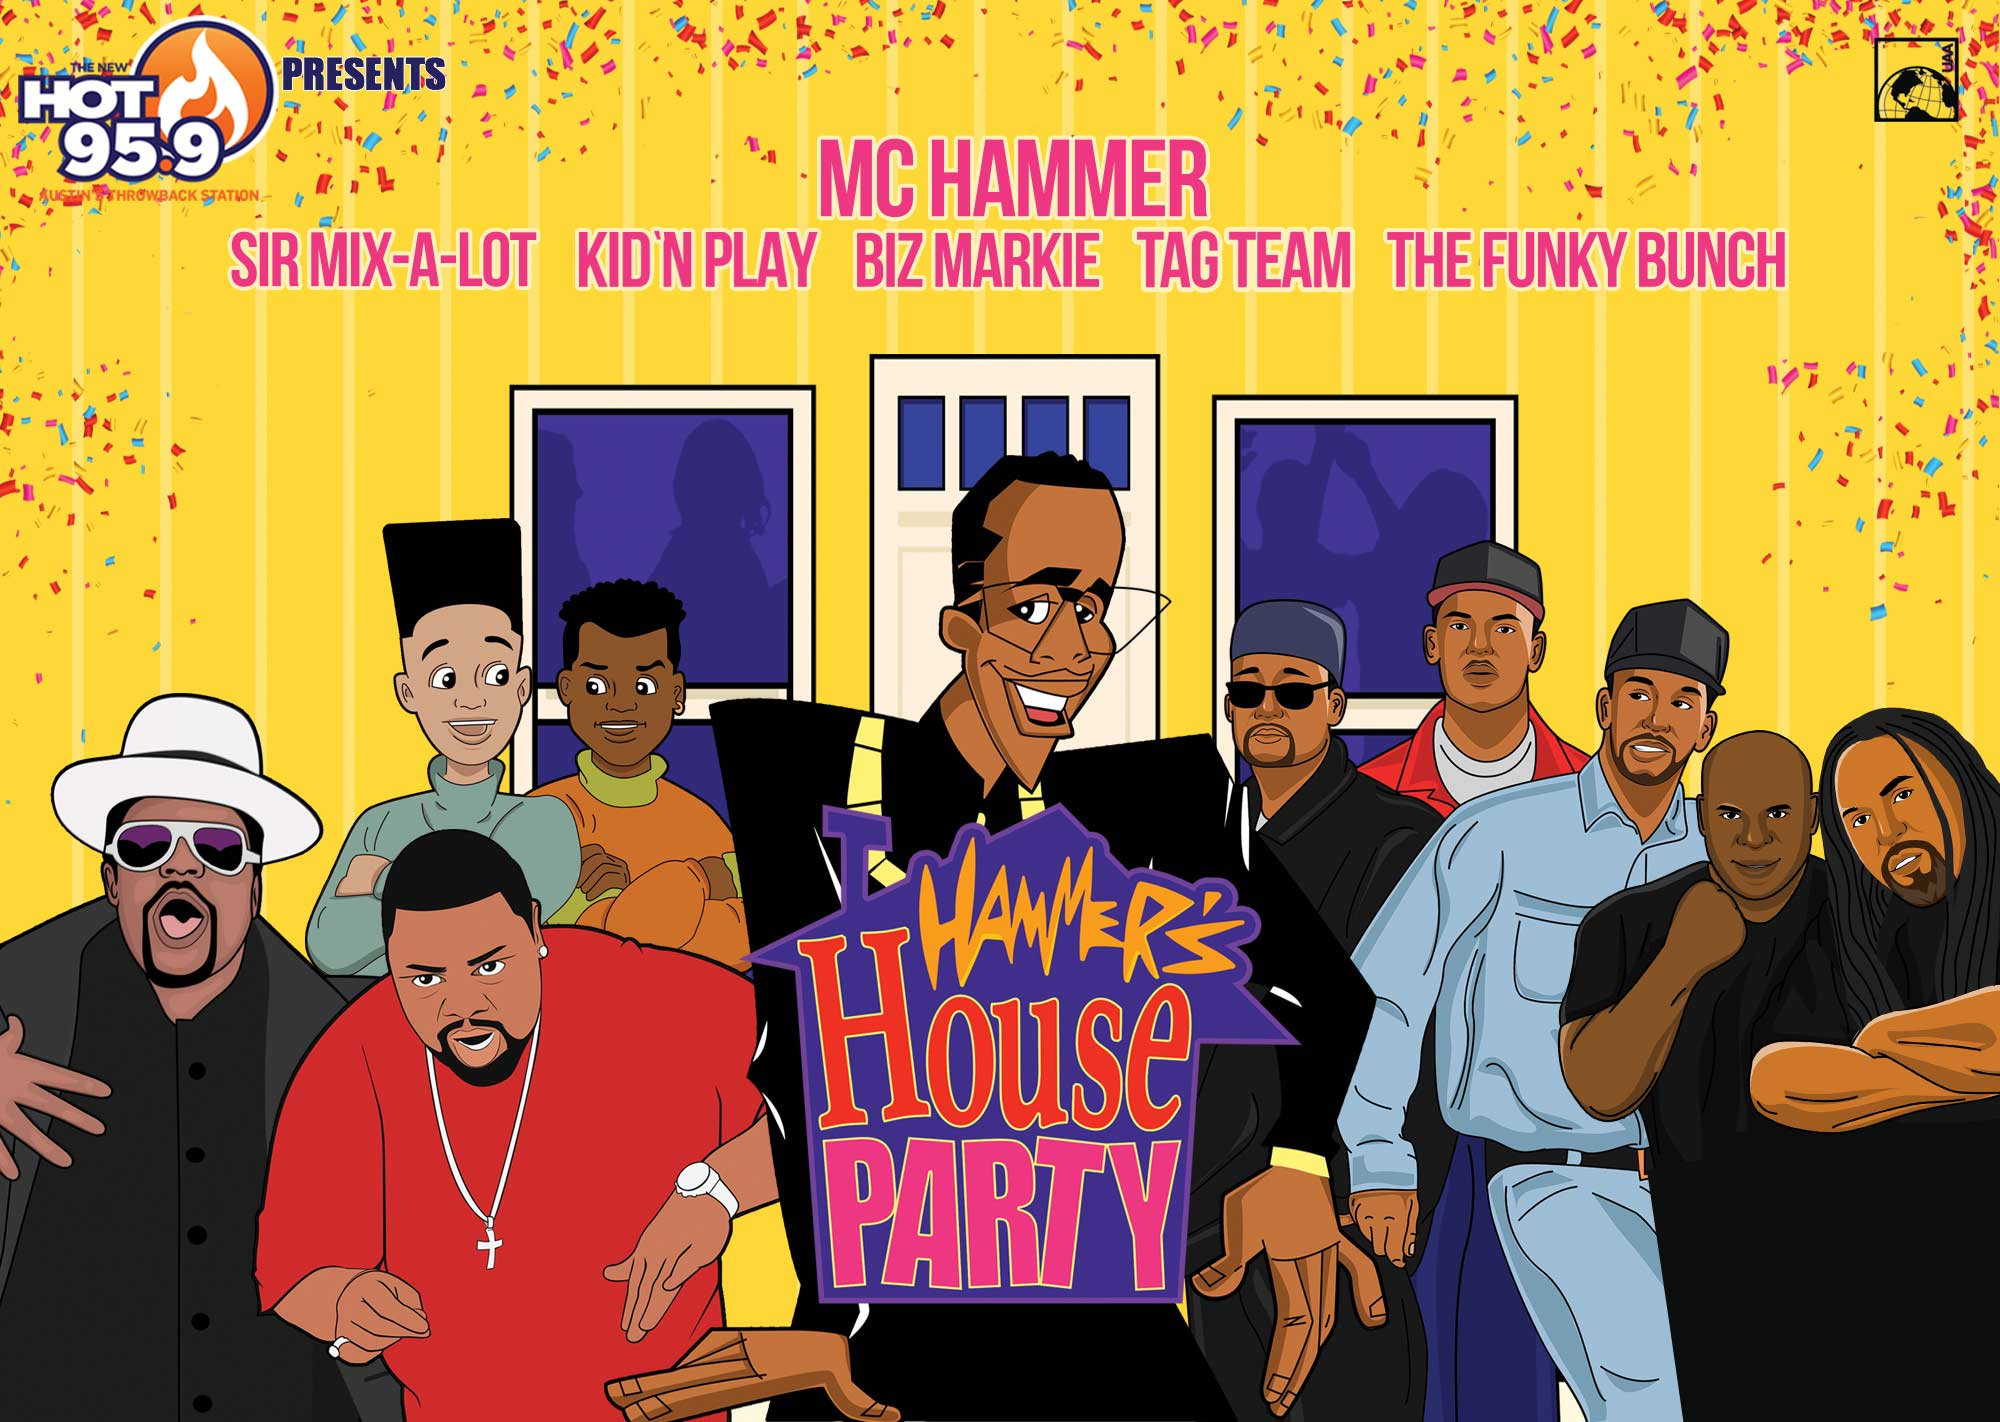 Hammers_House_Party_2000x1422_Updated.jpg